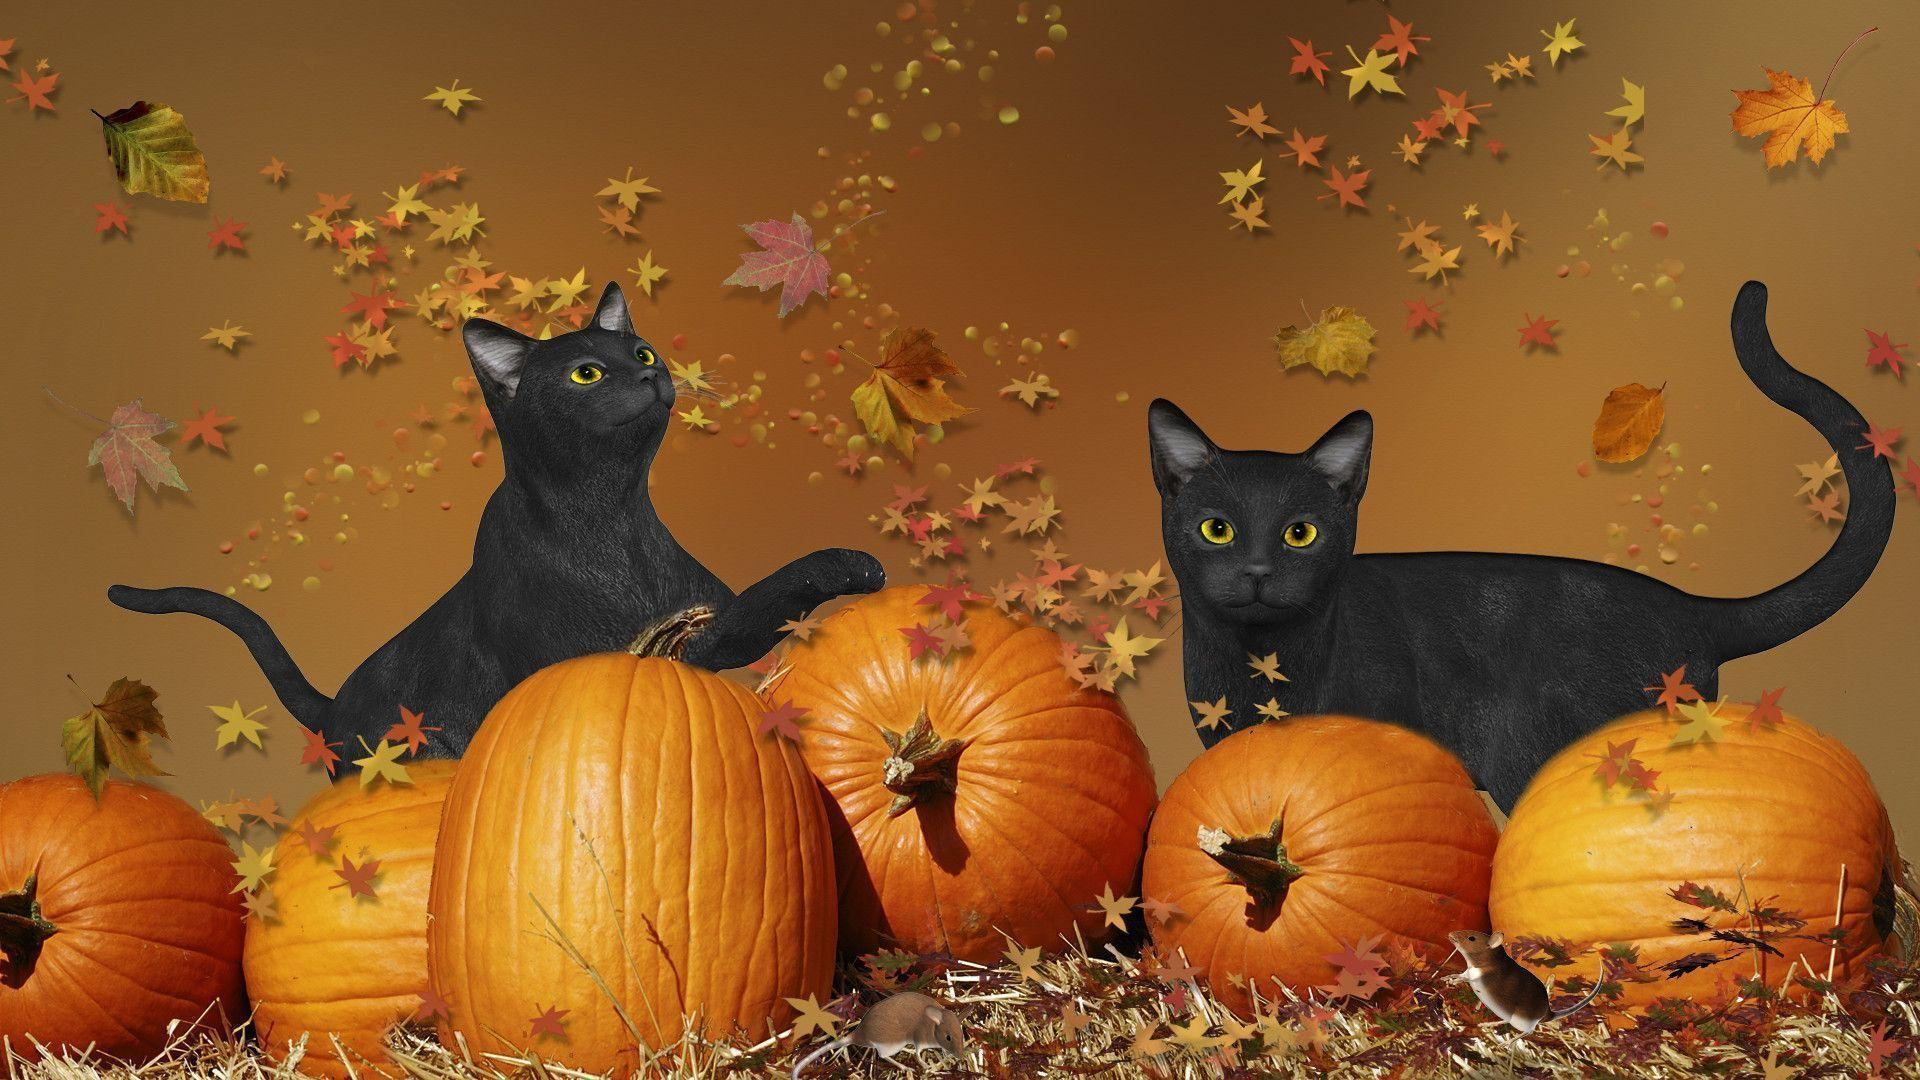 Halloween Black Cat Wallpaper | Cats Wallpaper HD